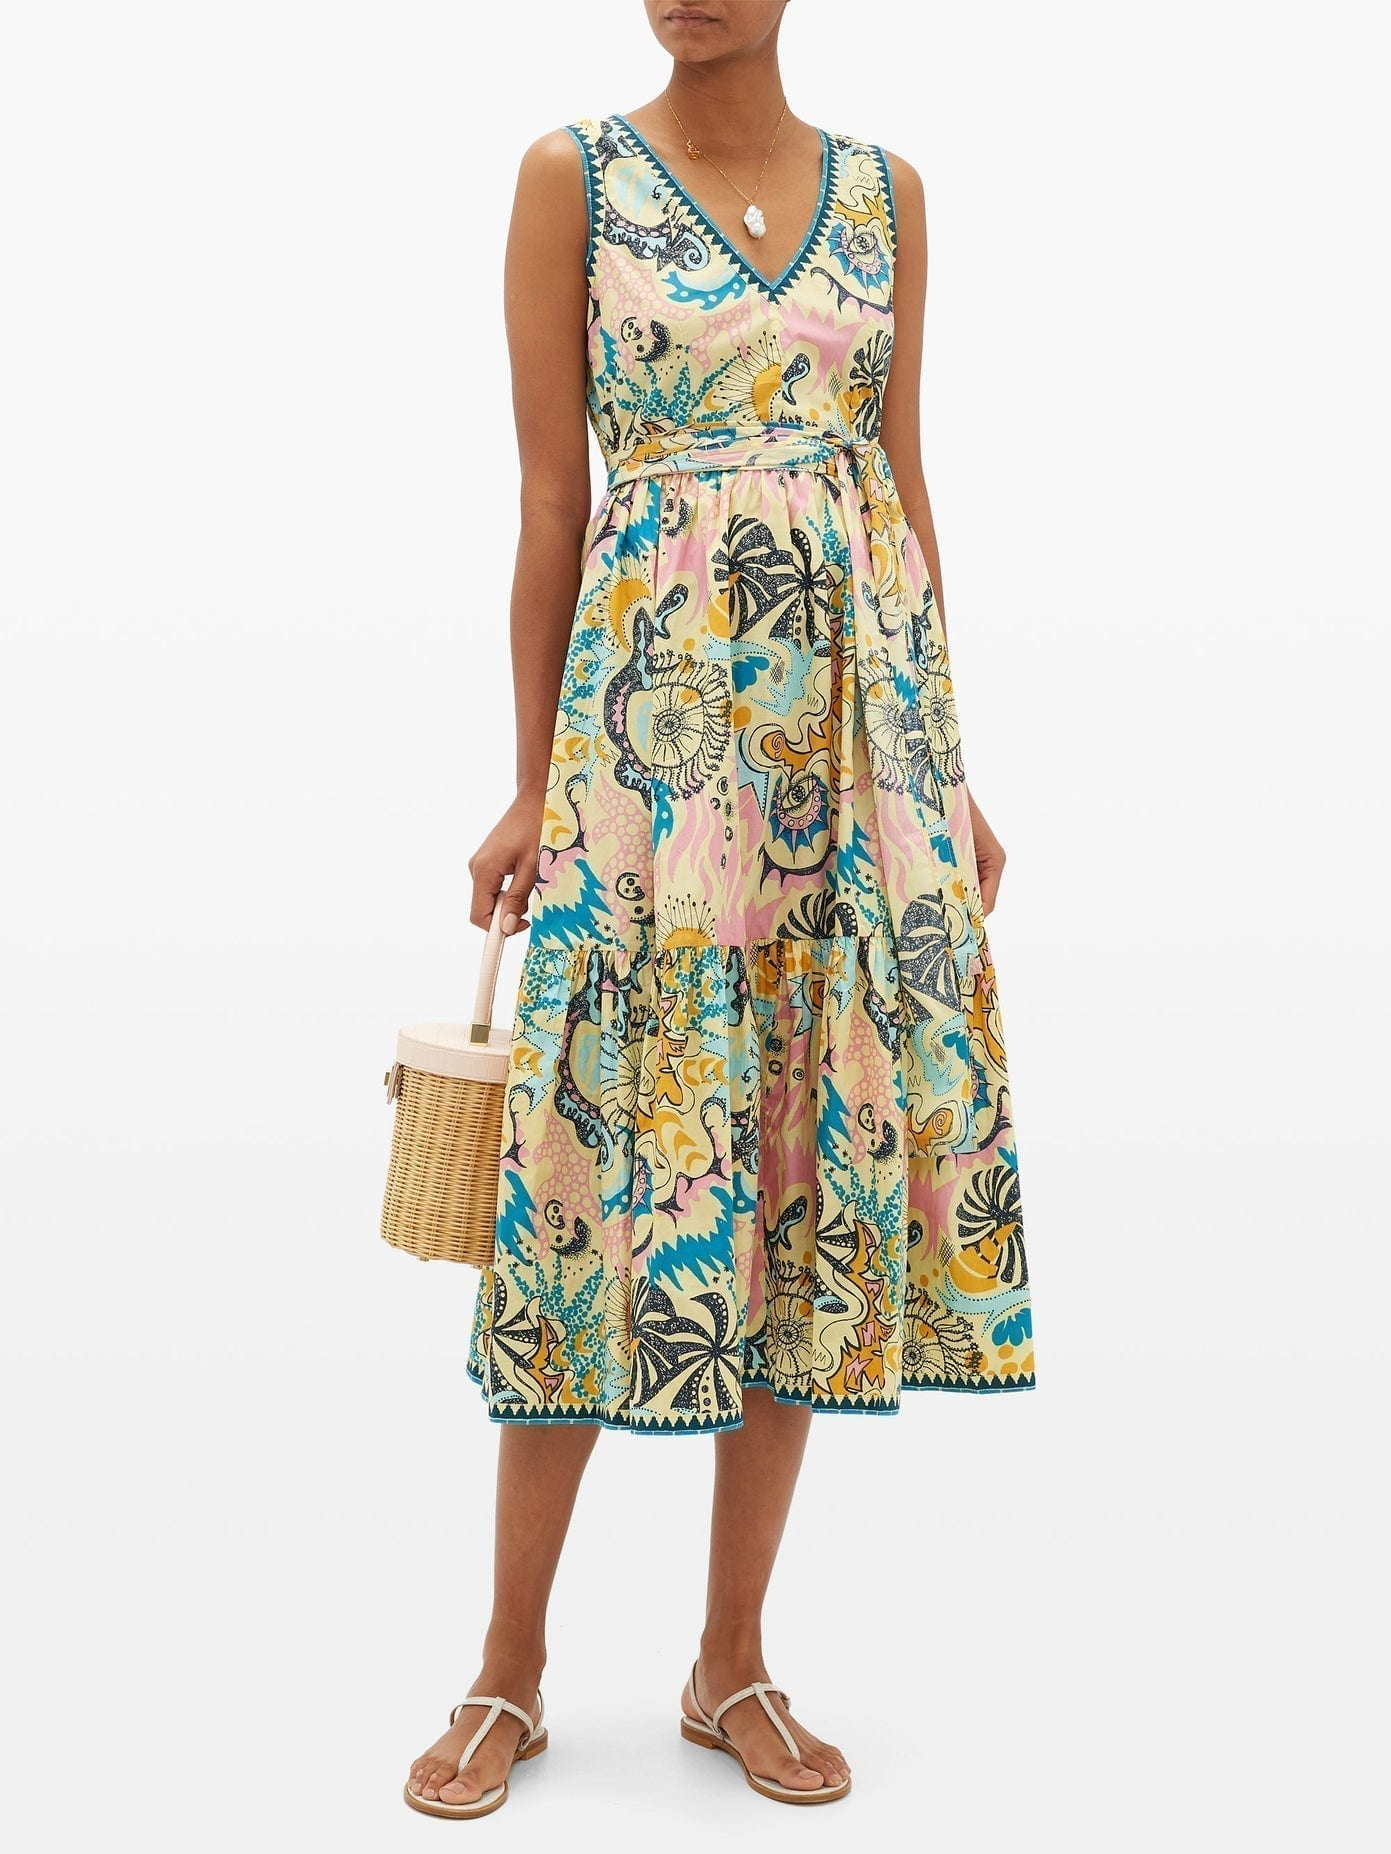 LE SIRENUSE POSITANO Lucy Que Onda Abstract-Print Belted Cotton Dress